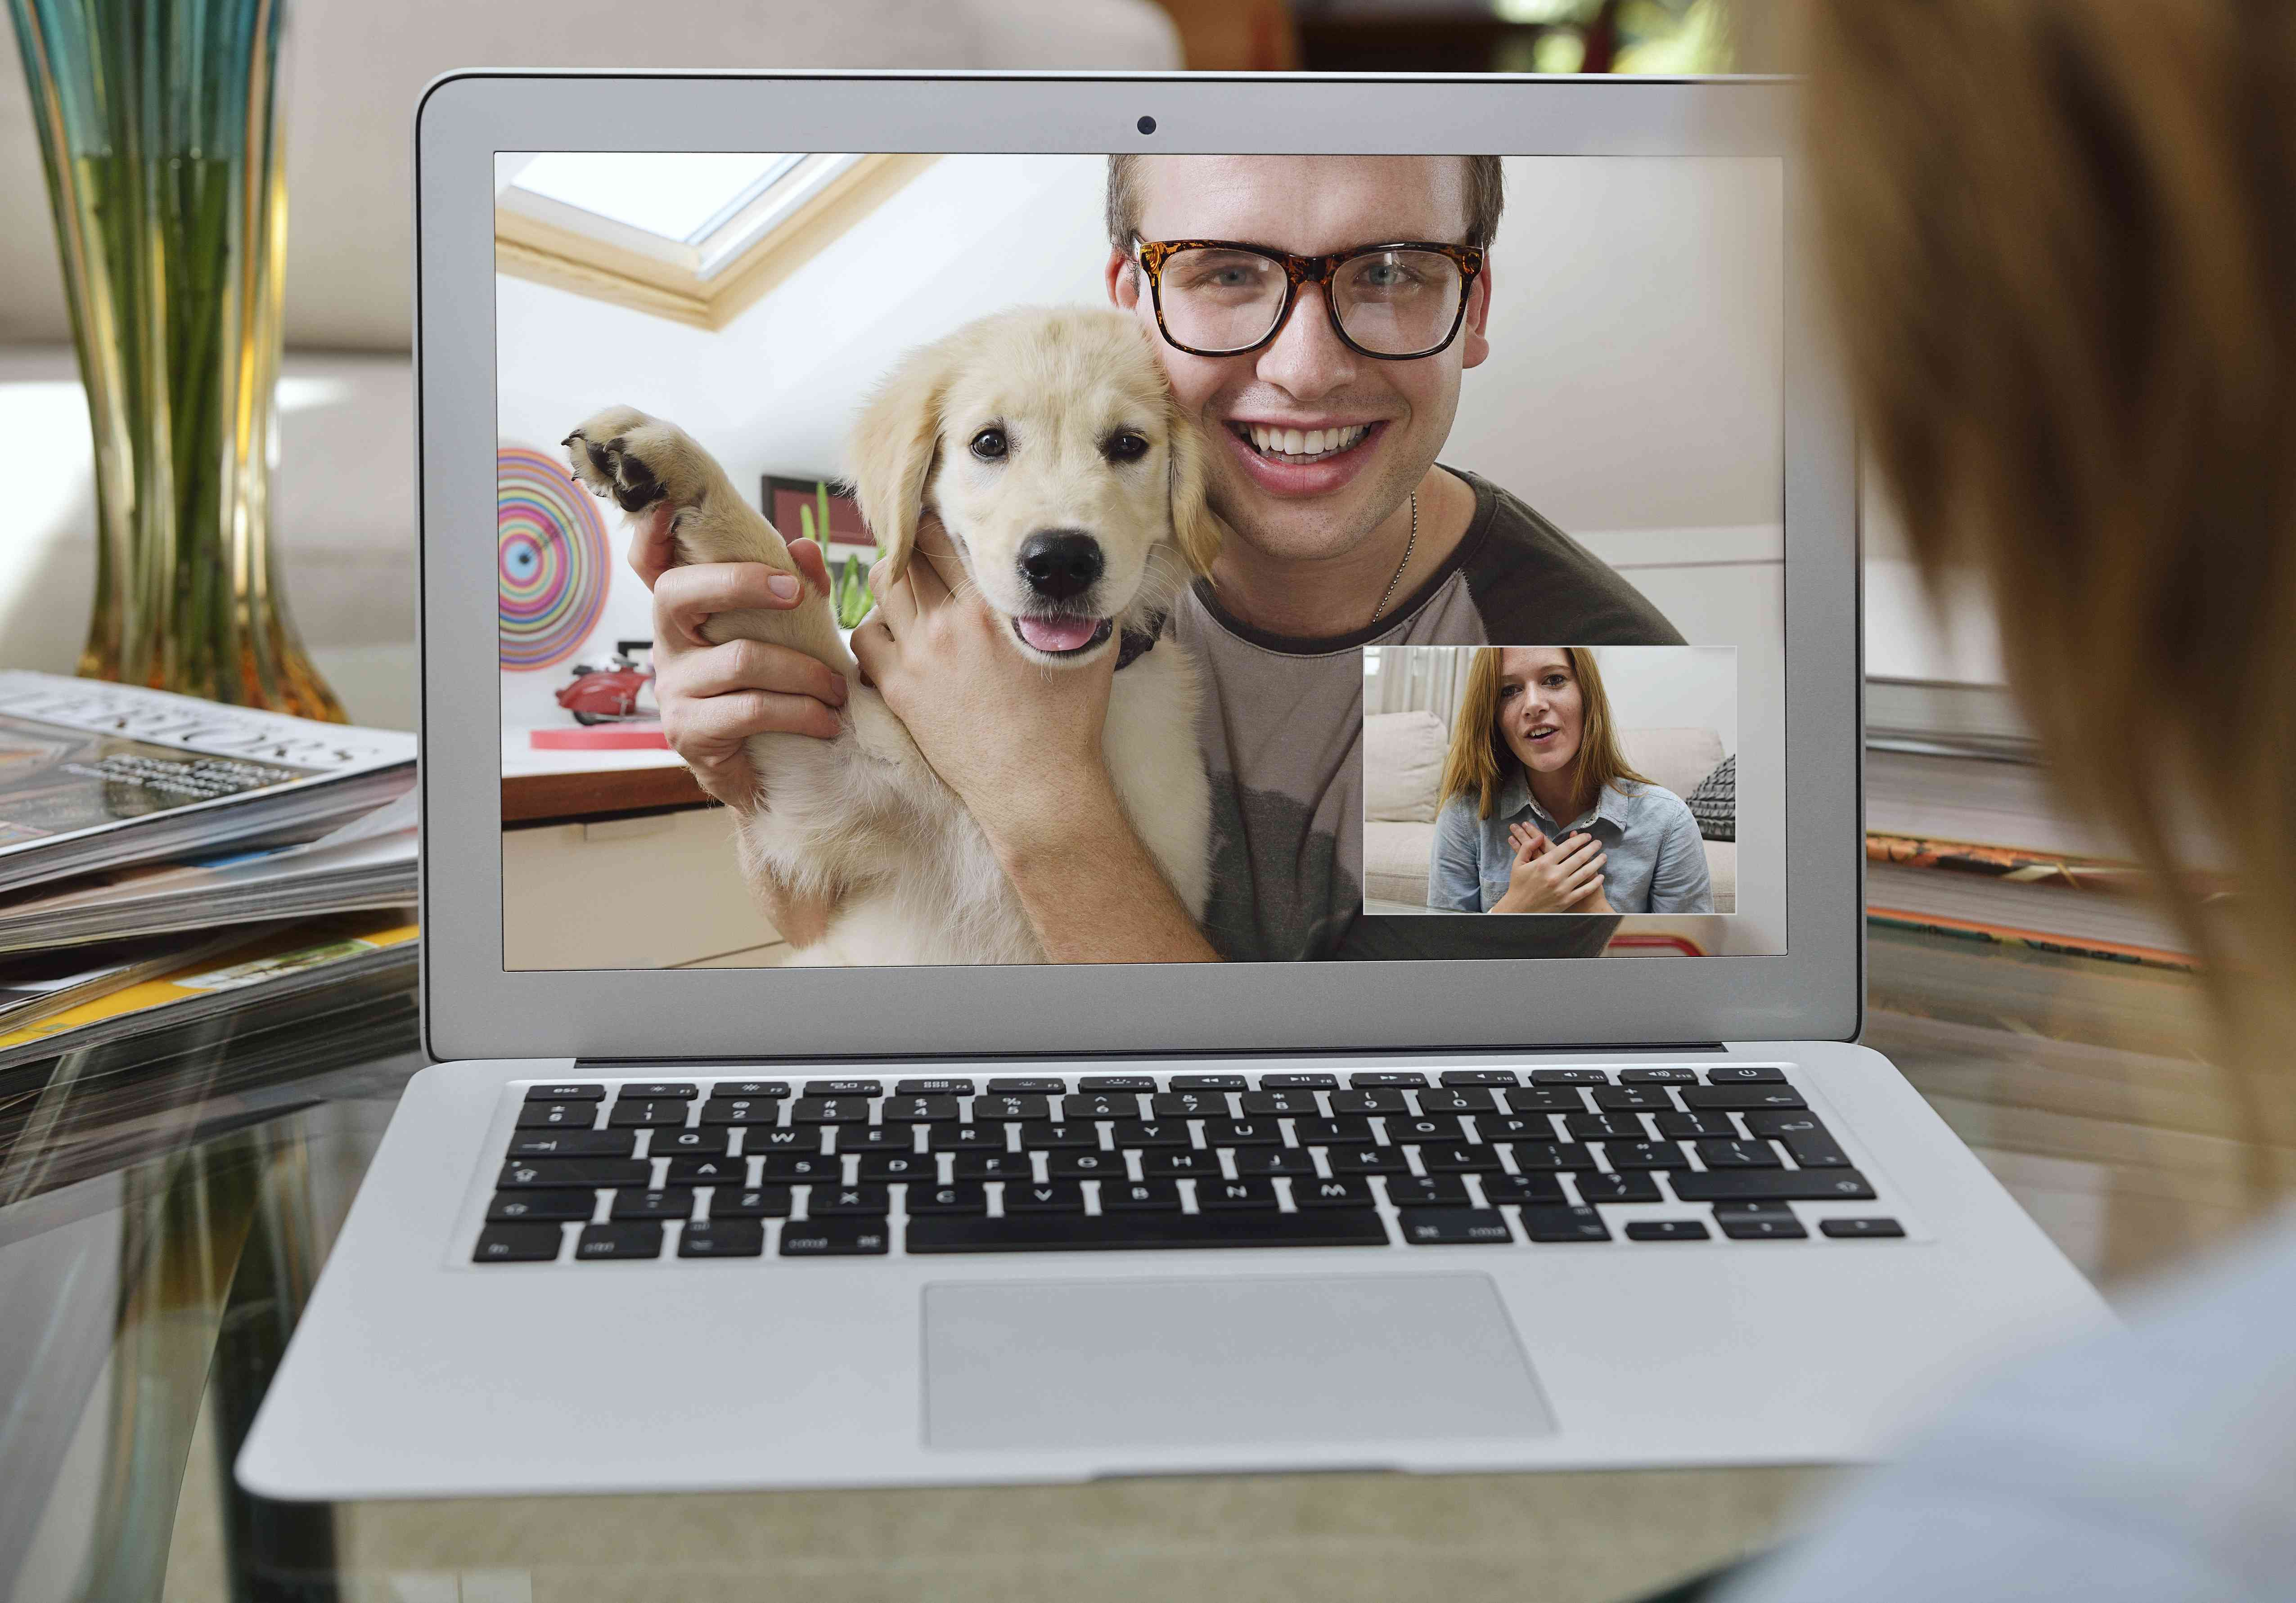 Pet owner showing off a new puppy over Skype on computer